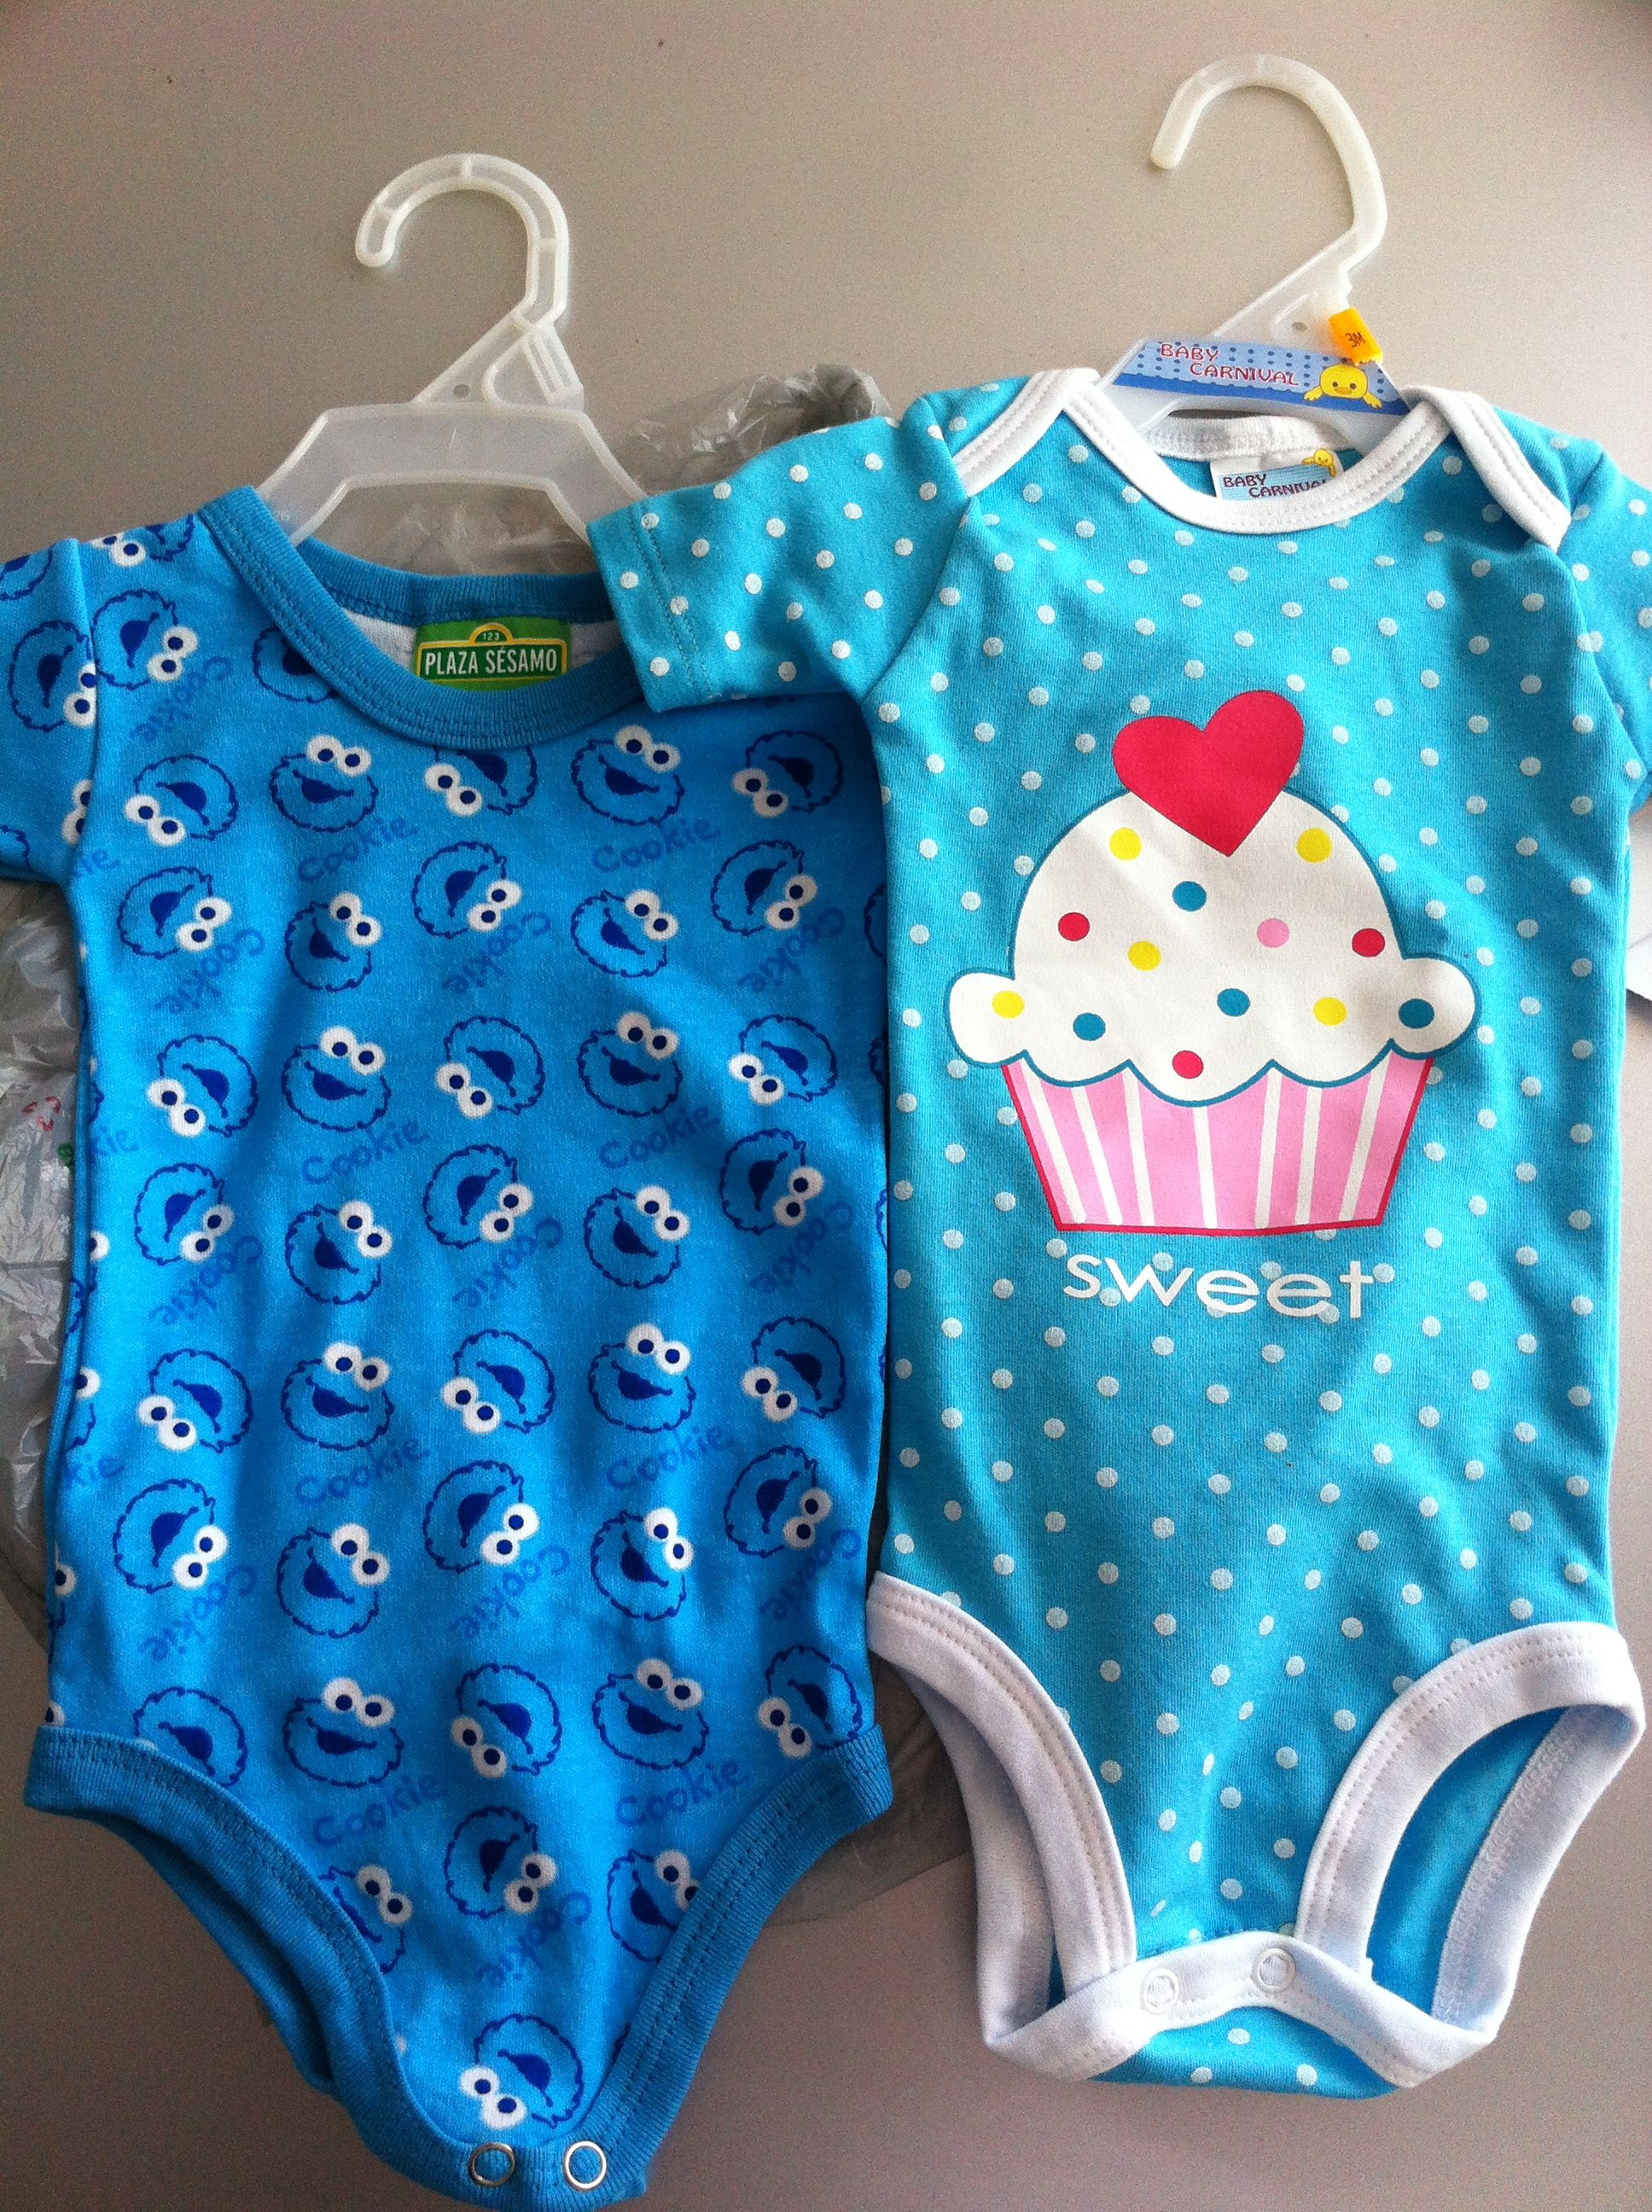 Sweet baby clothes Awh if you had twins boy and girl have a